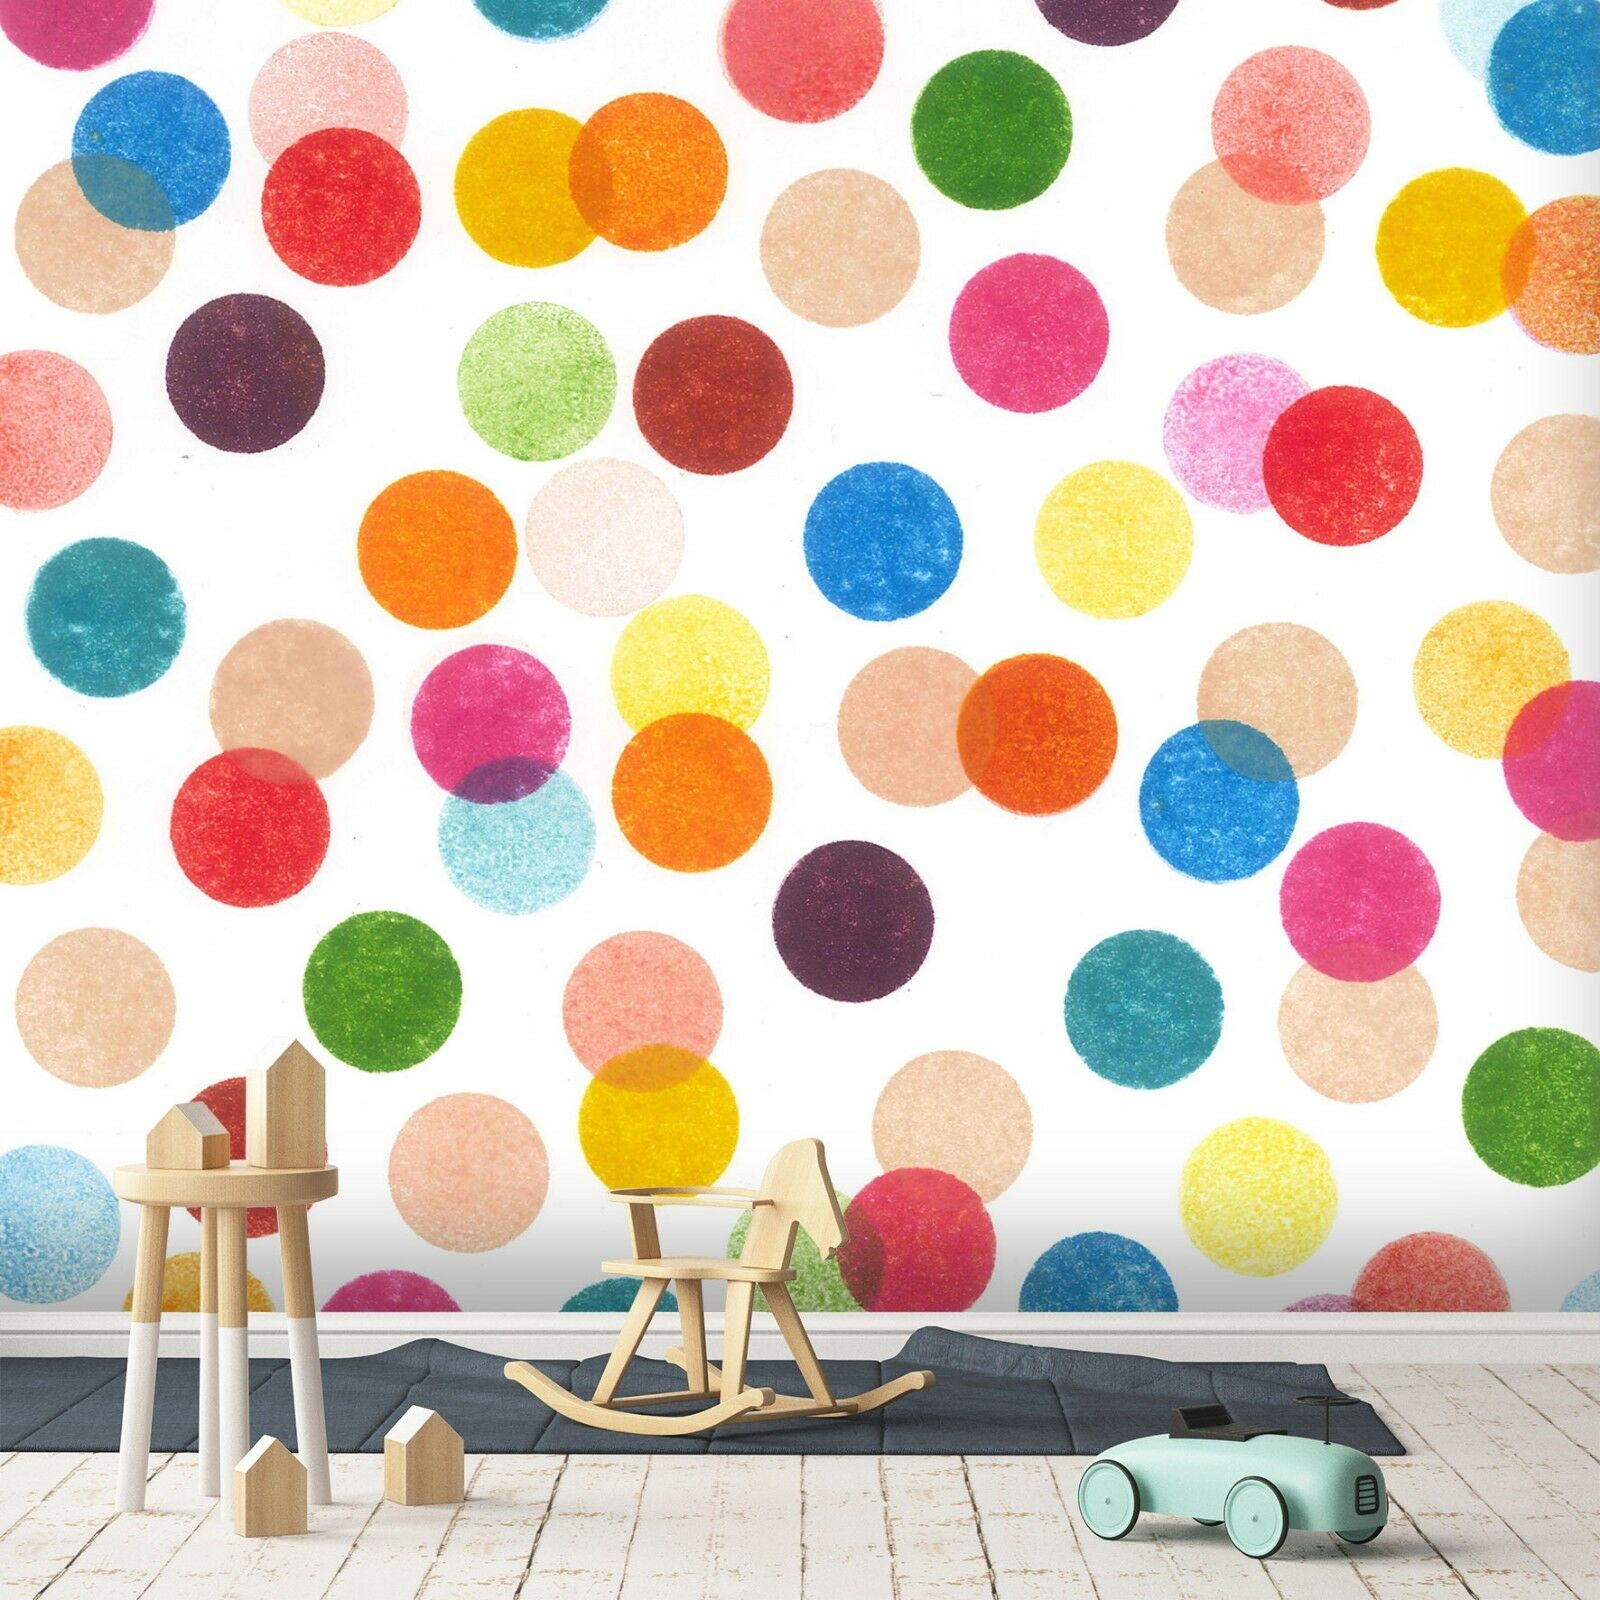 3D Painting Circular Pattern 099 WallPaper Murals Wall Decal WallPaper AU Carly